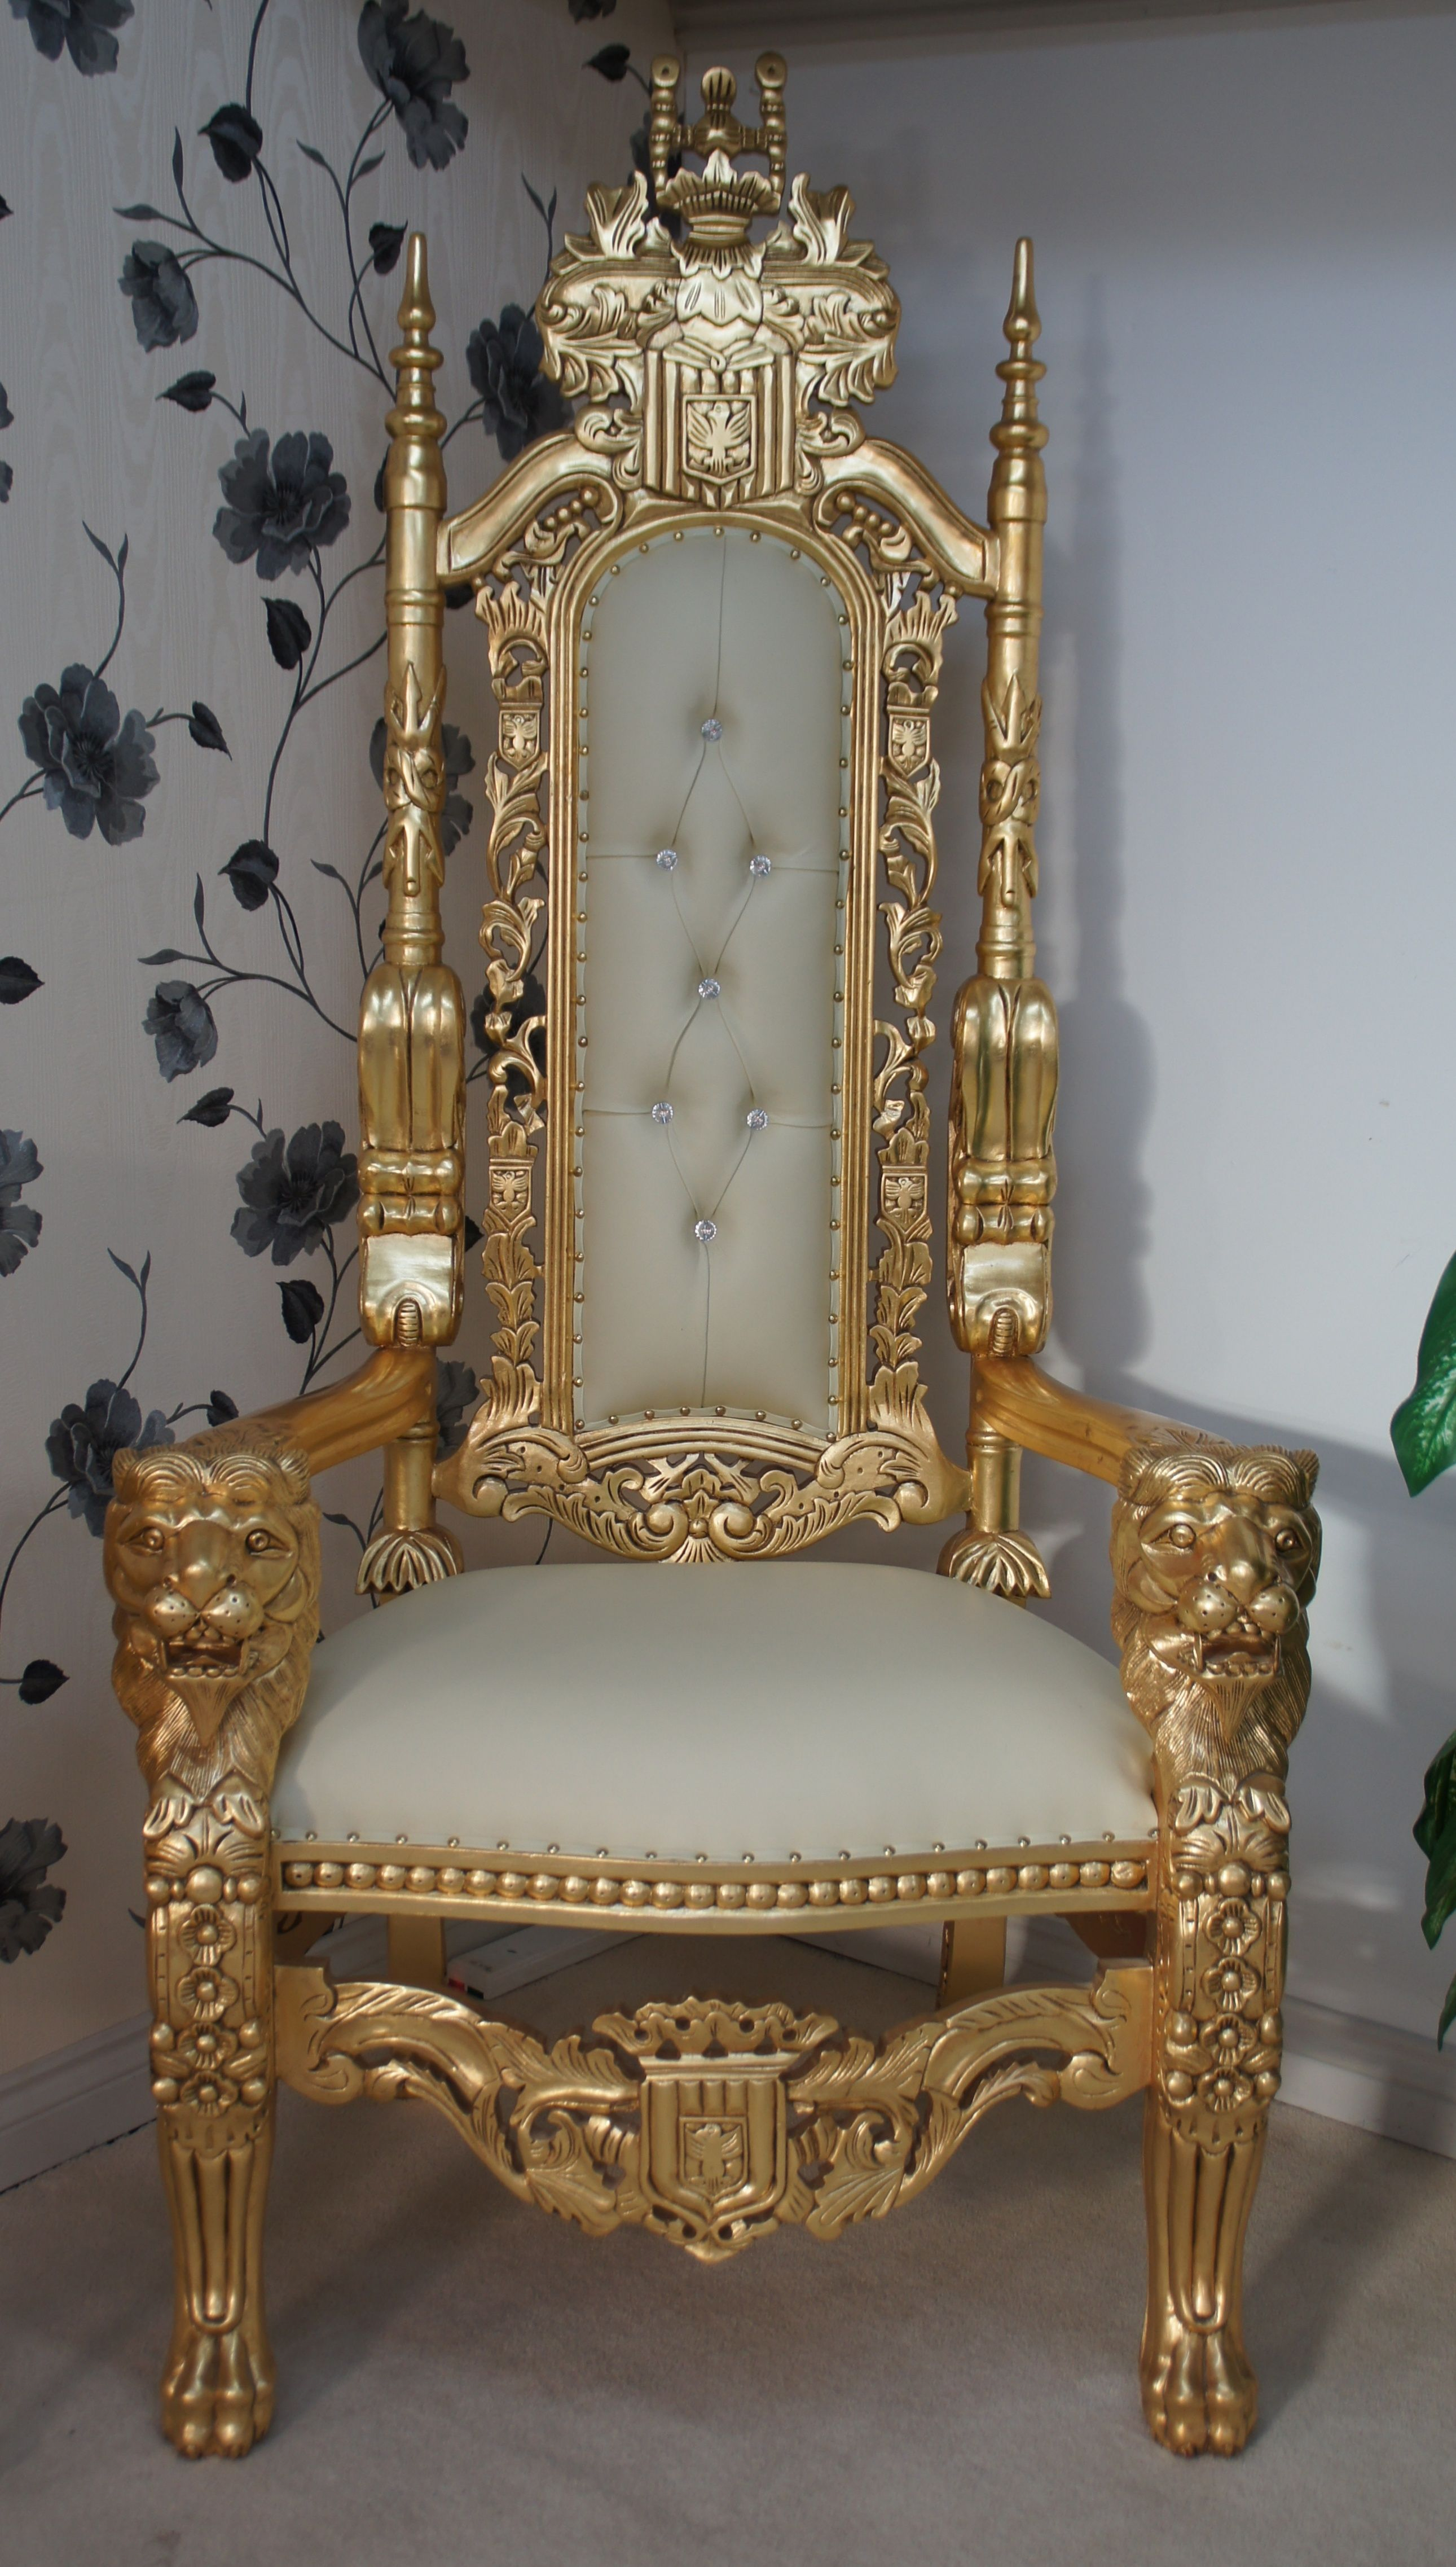 lion-throne-chair-in-gold-leaf-cream-easiclean-faux-leather